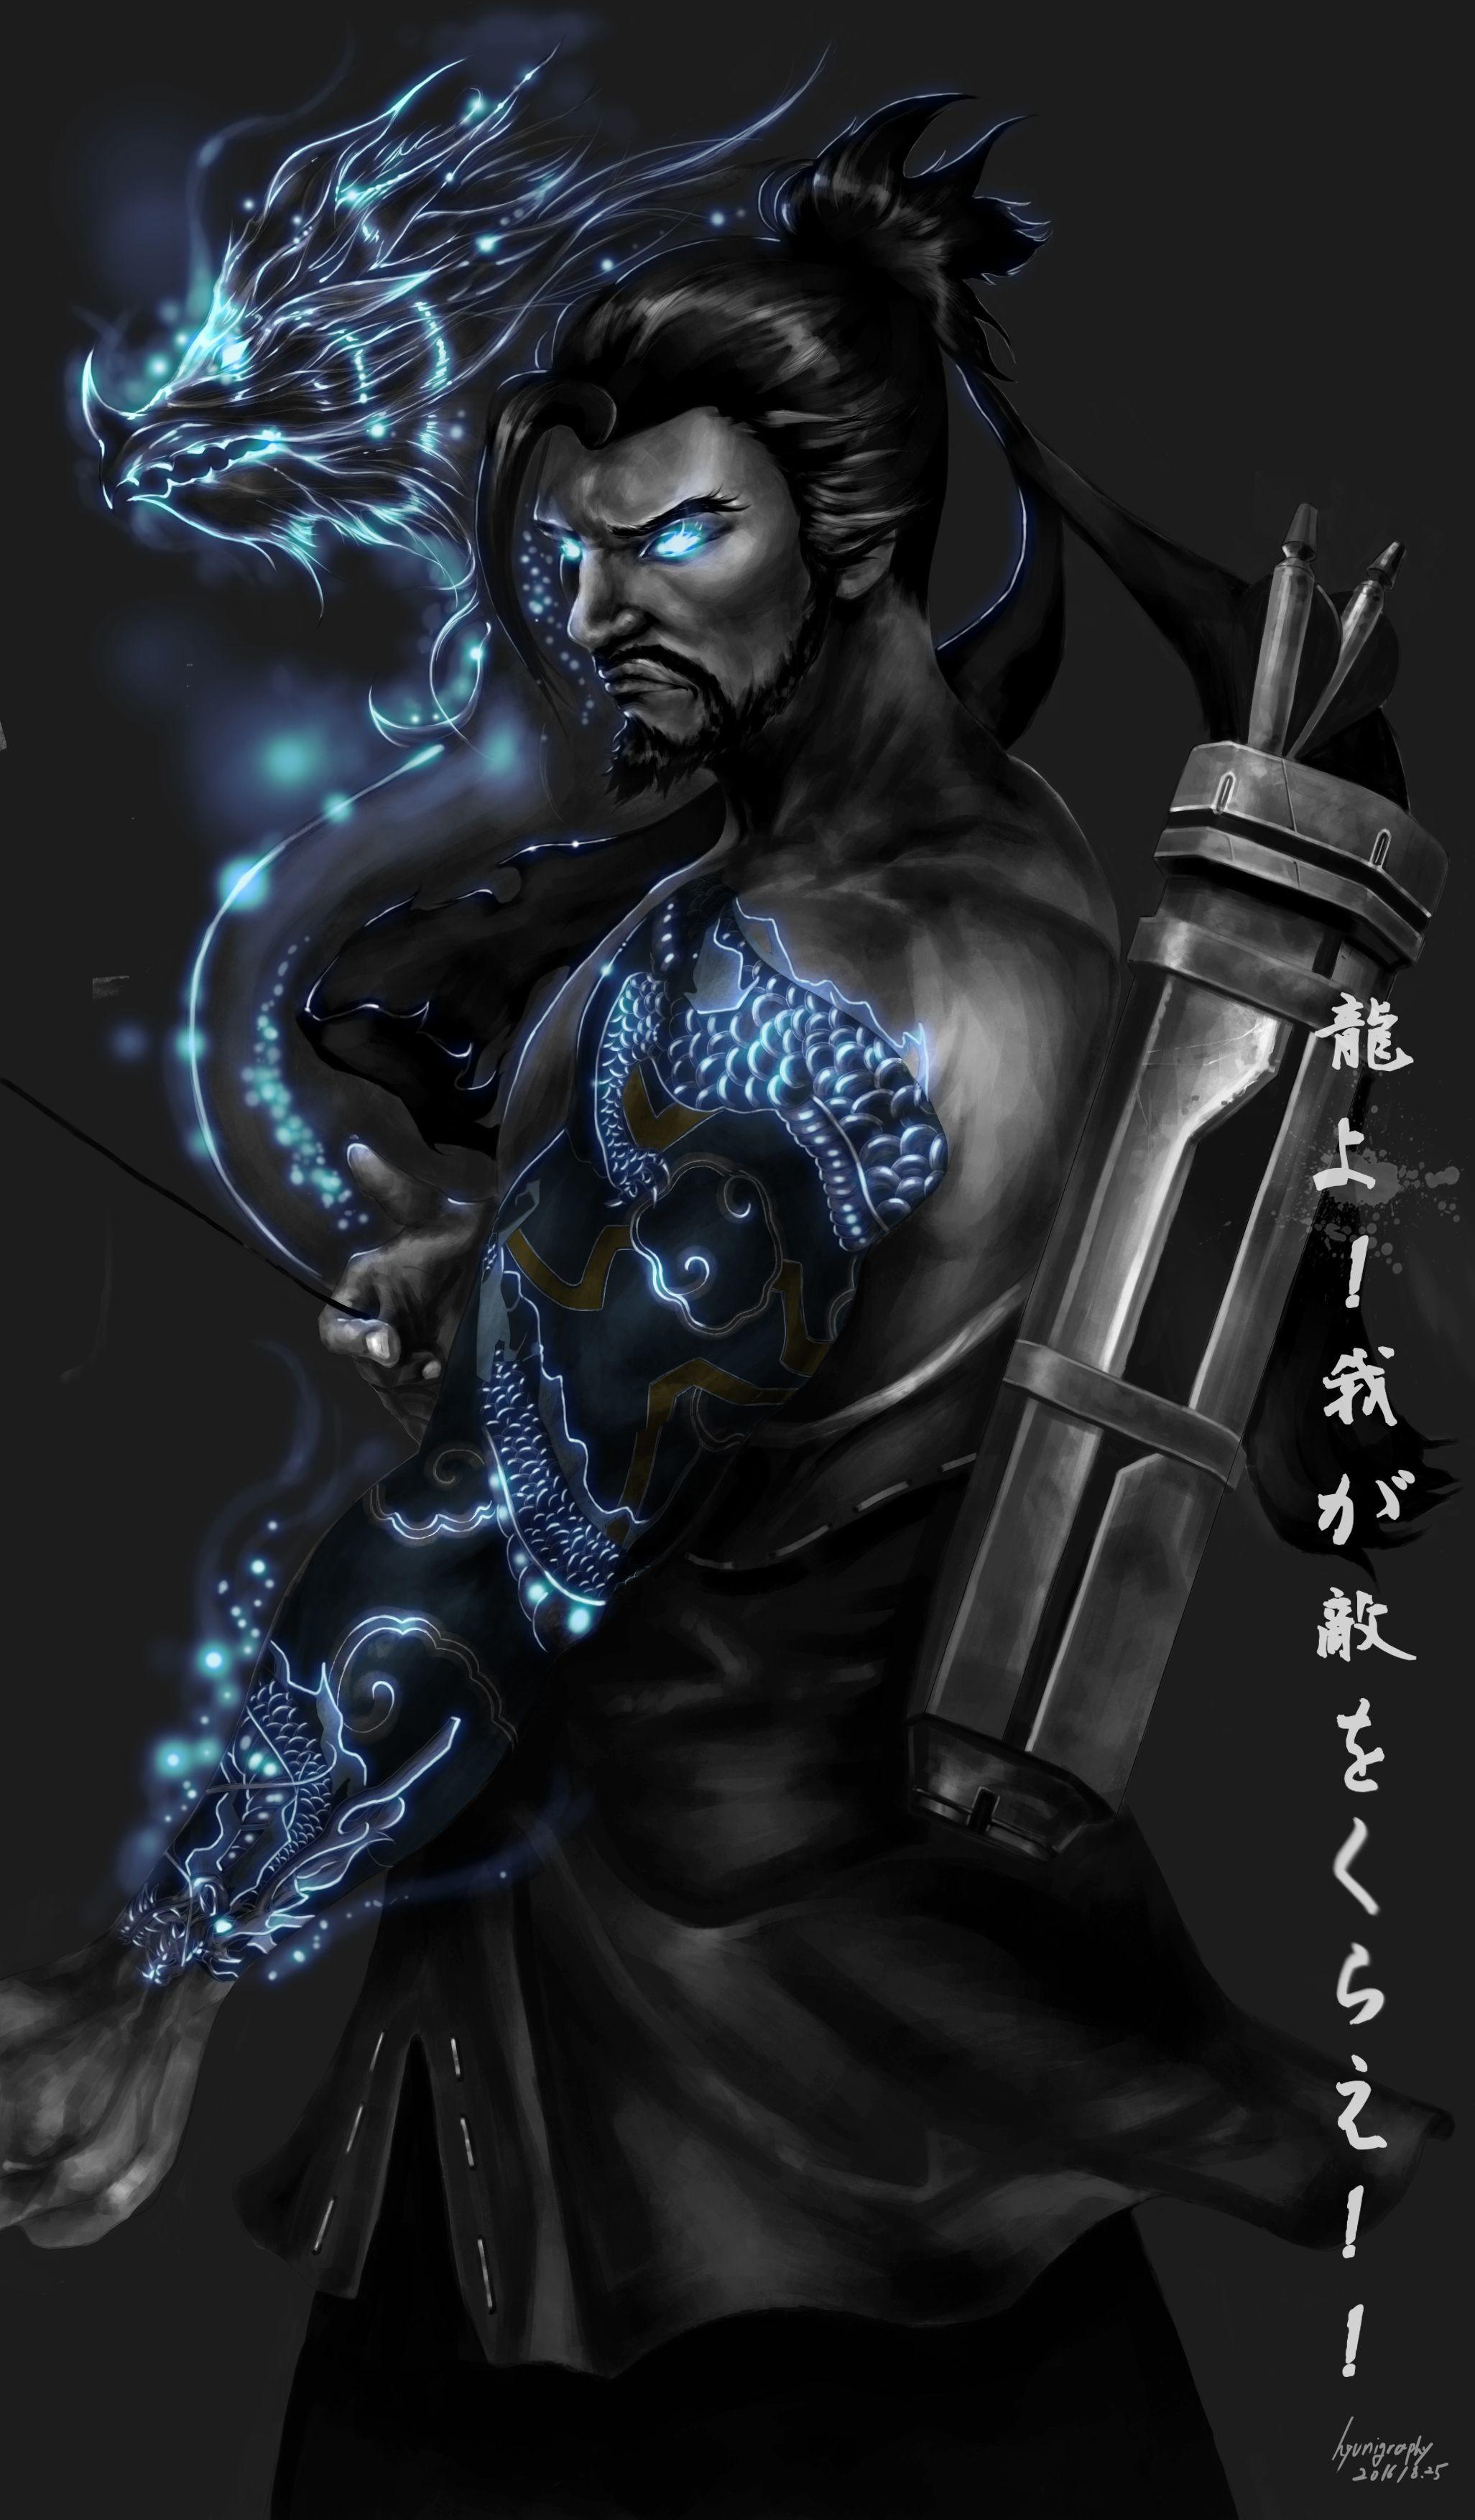 Overwatch Hanzo Android Wallpapers   Wallpaper Cave